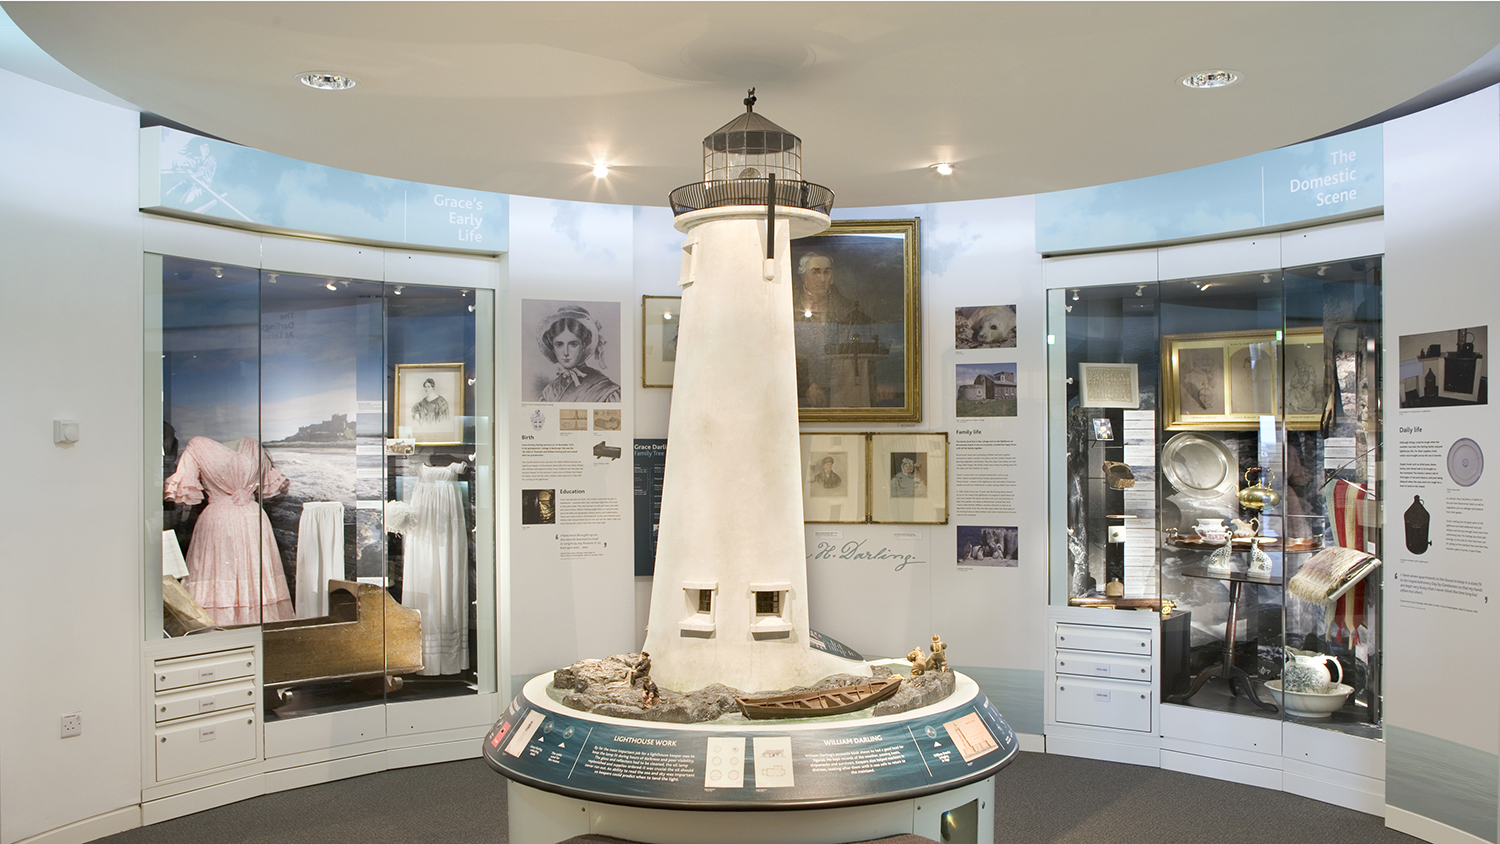 Inside the RNLI Grace Darling Museum